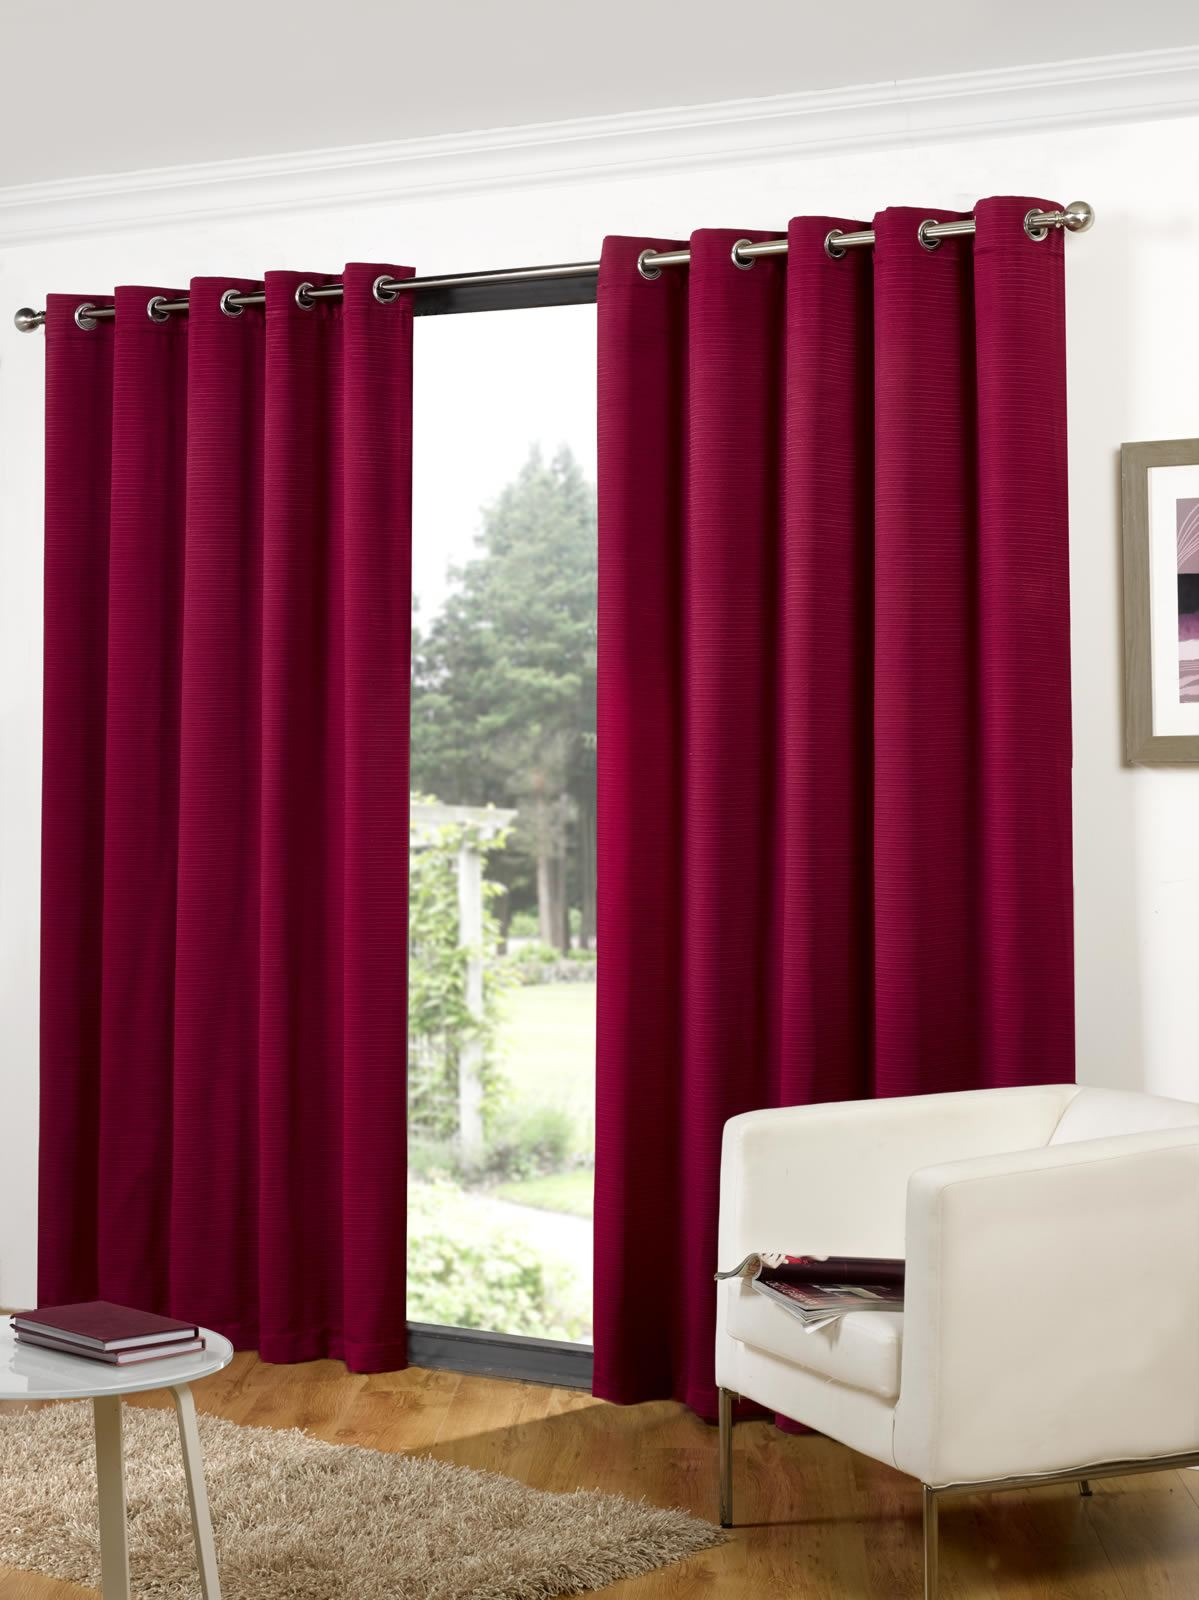 clearance bohemia ribbed lined eyelet curtains ready. Black Bedroom Furniture Sets. Home Design Ideas